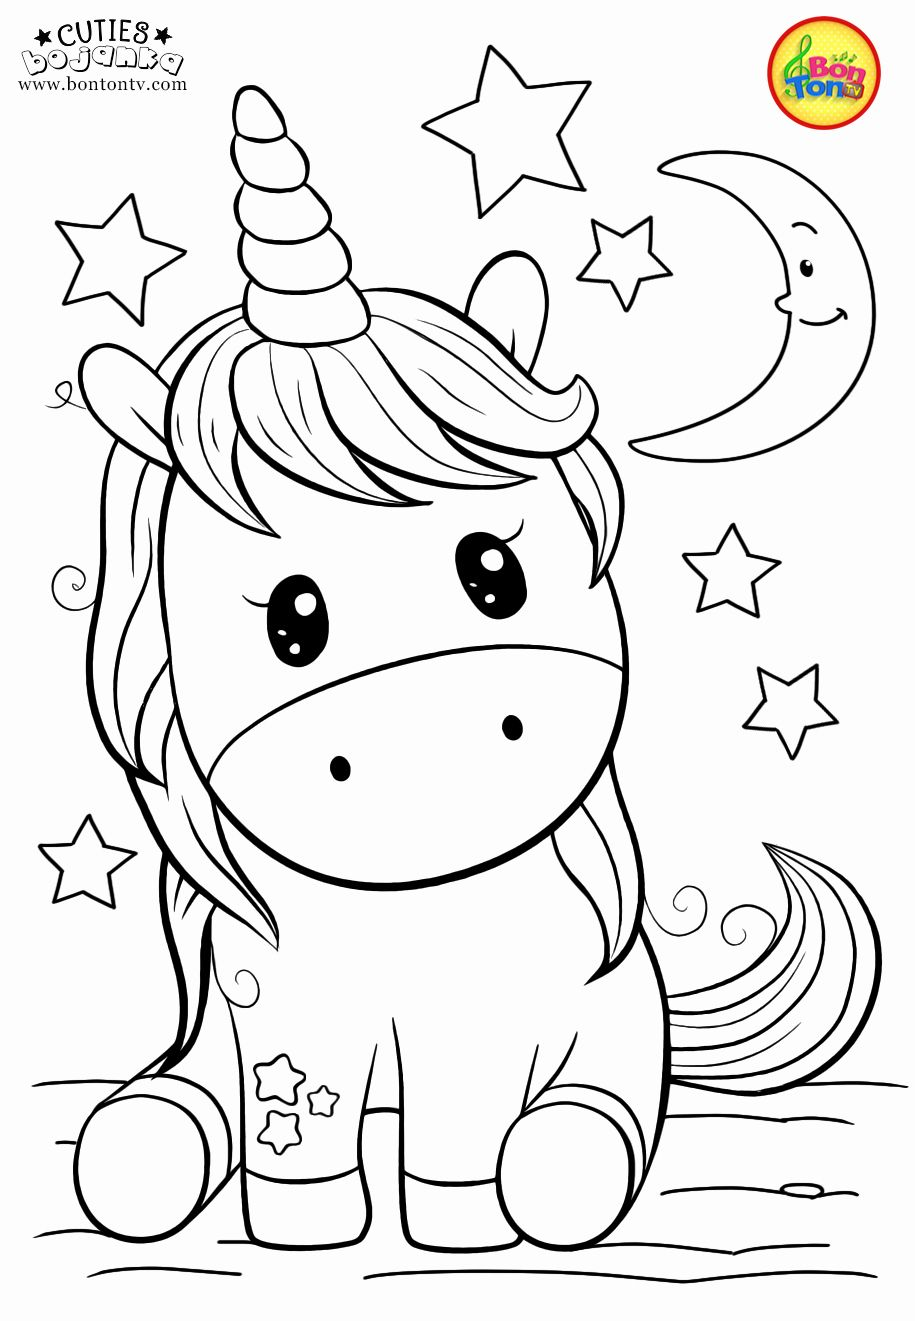 Animal Coloring Pages For 6 Year Olds Con Imagenes Dibujos